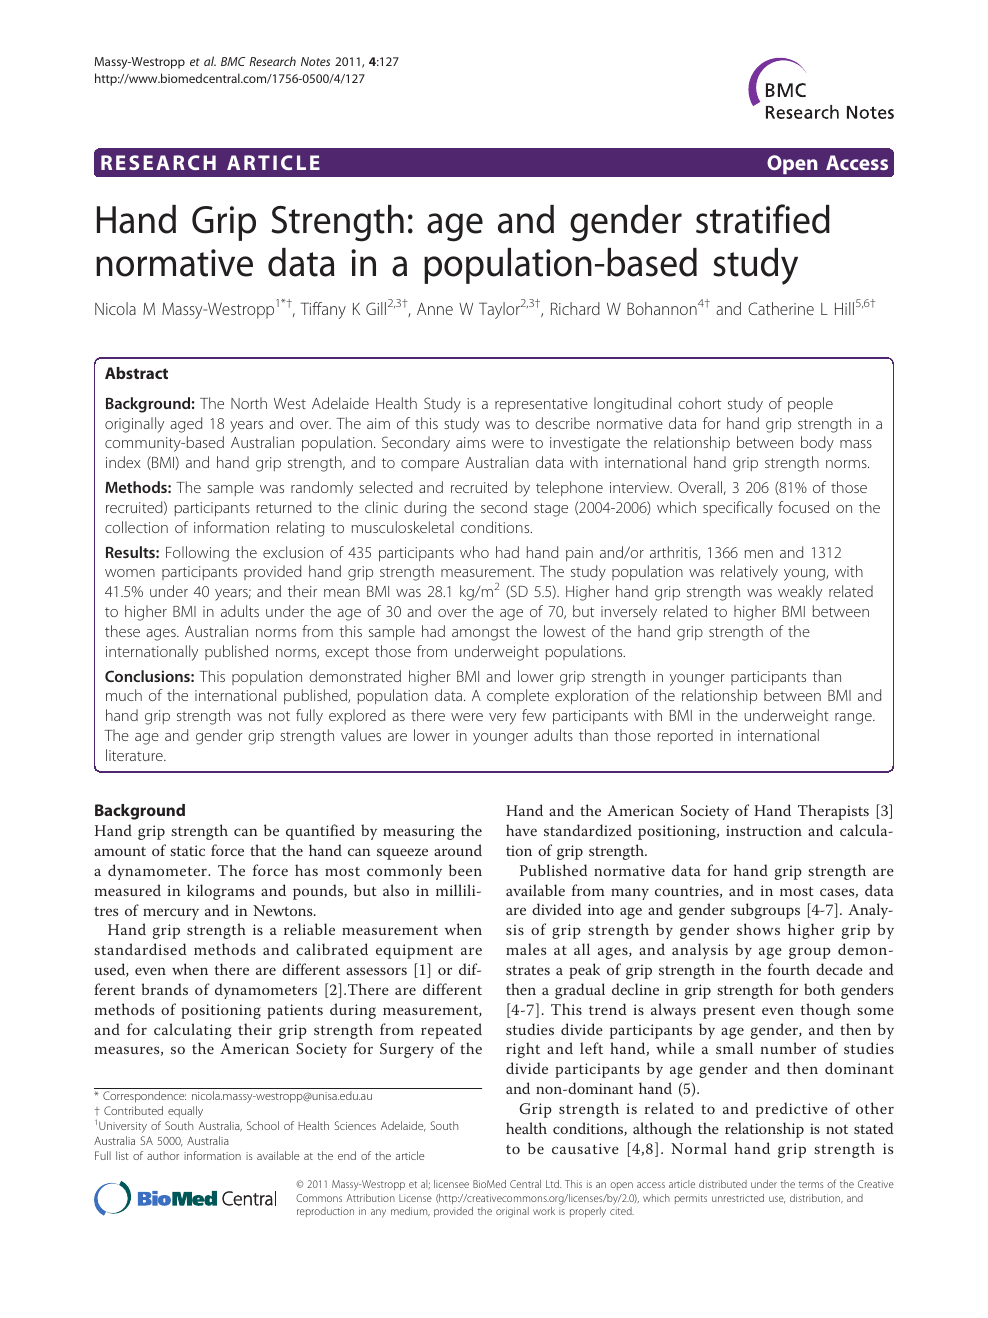 Hand Grip Strength: age and gender stratified normative data